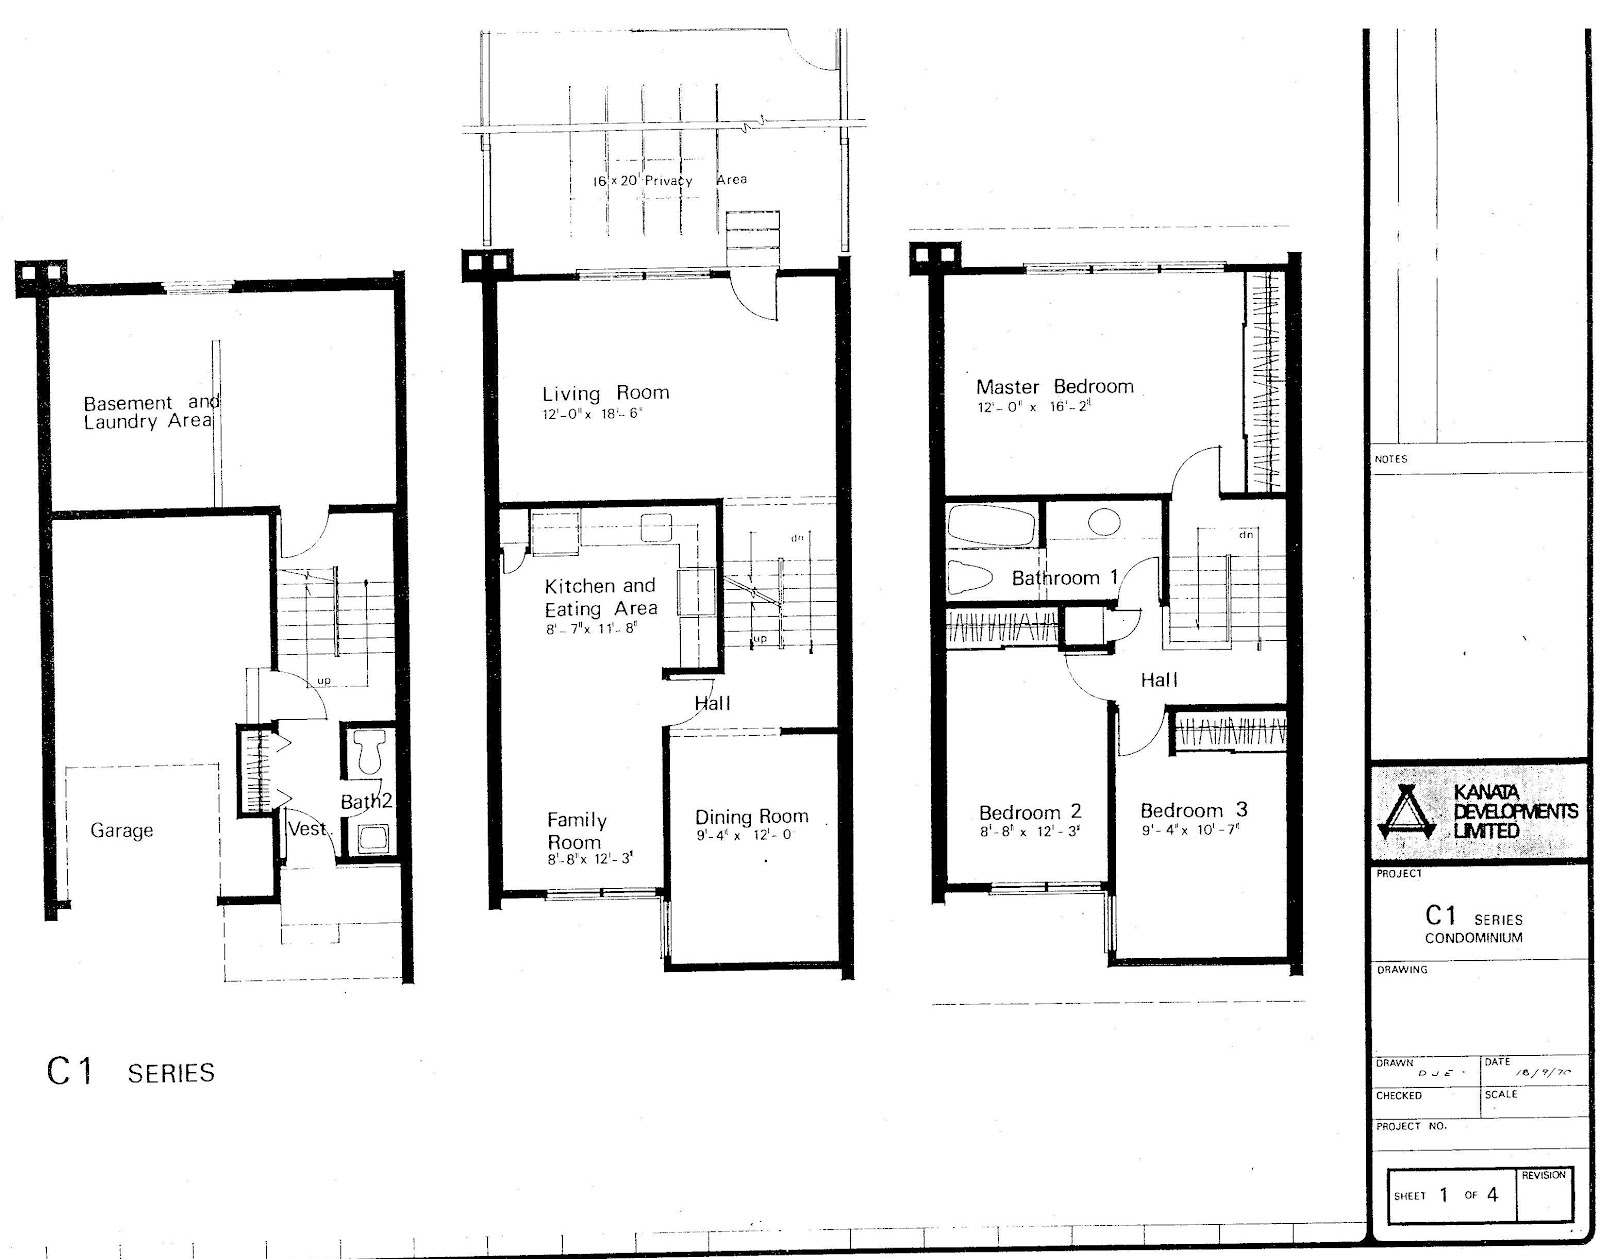 Simple 3 story townhome plans placement home plans for Three story townhouse floor plans